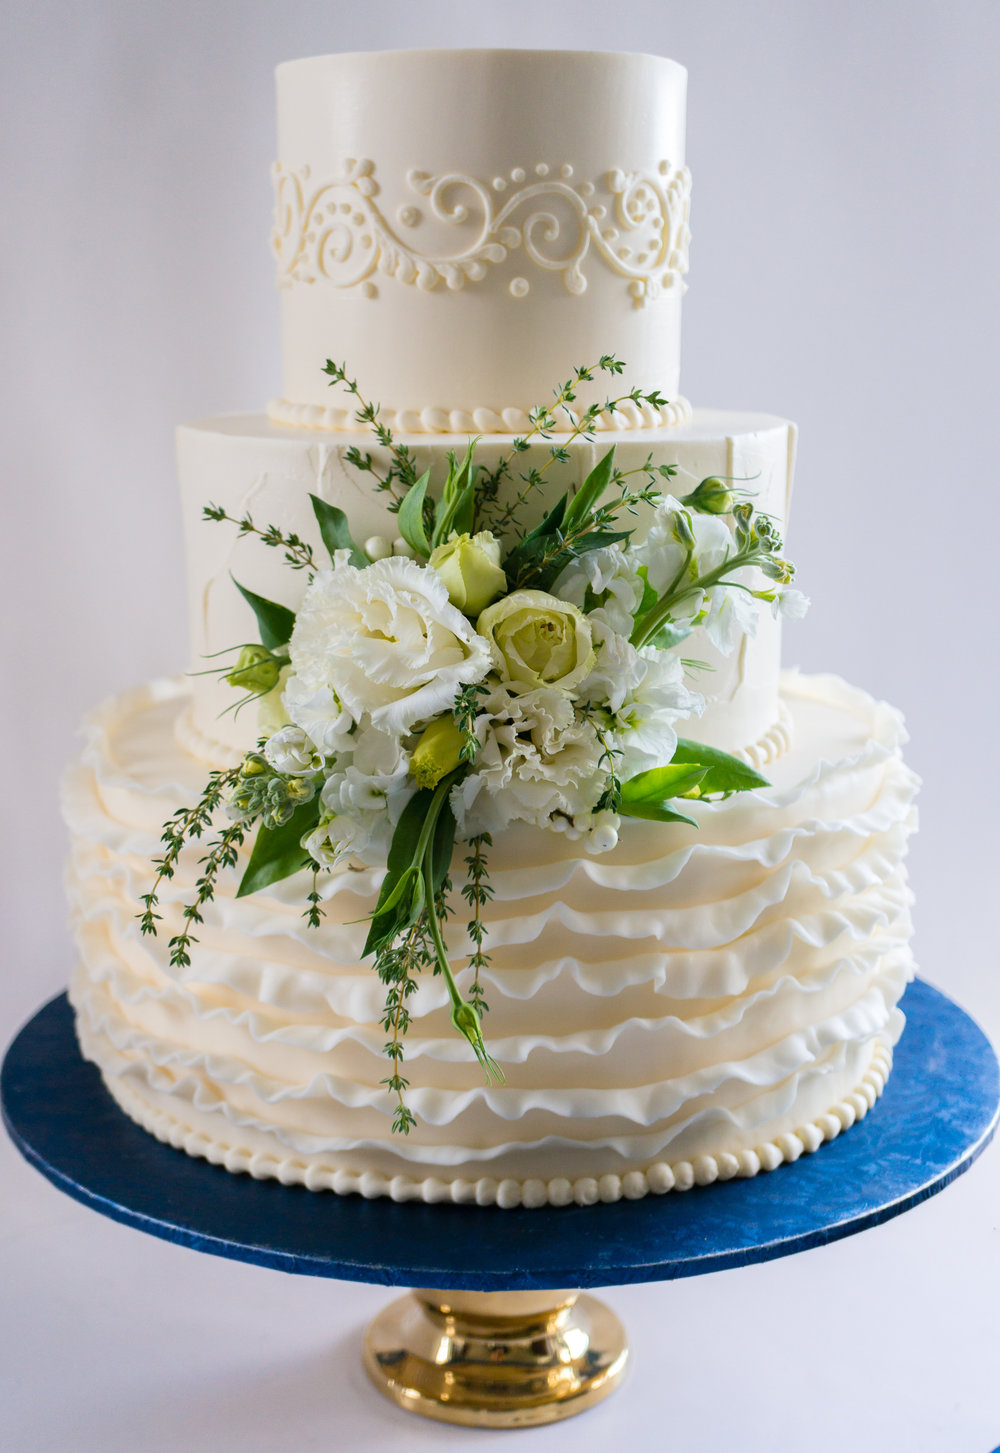 wedding cakes gallery wedding cakes papa haydn 24424